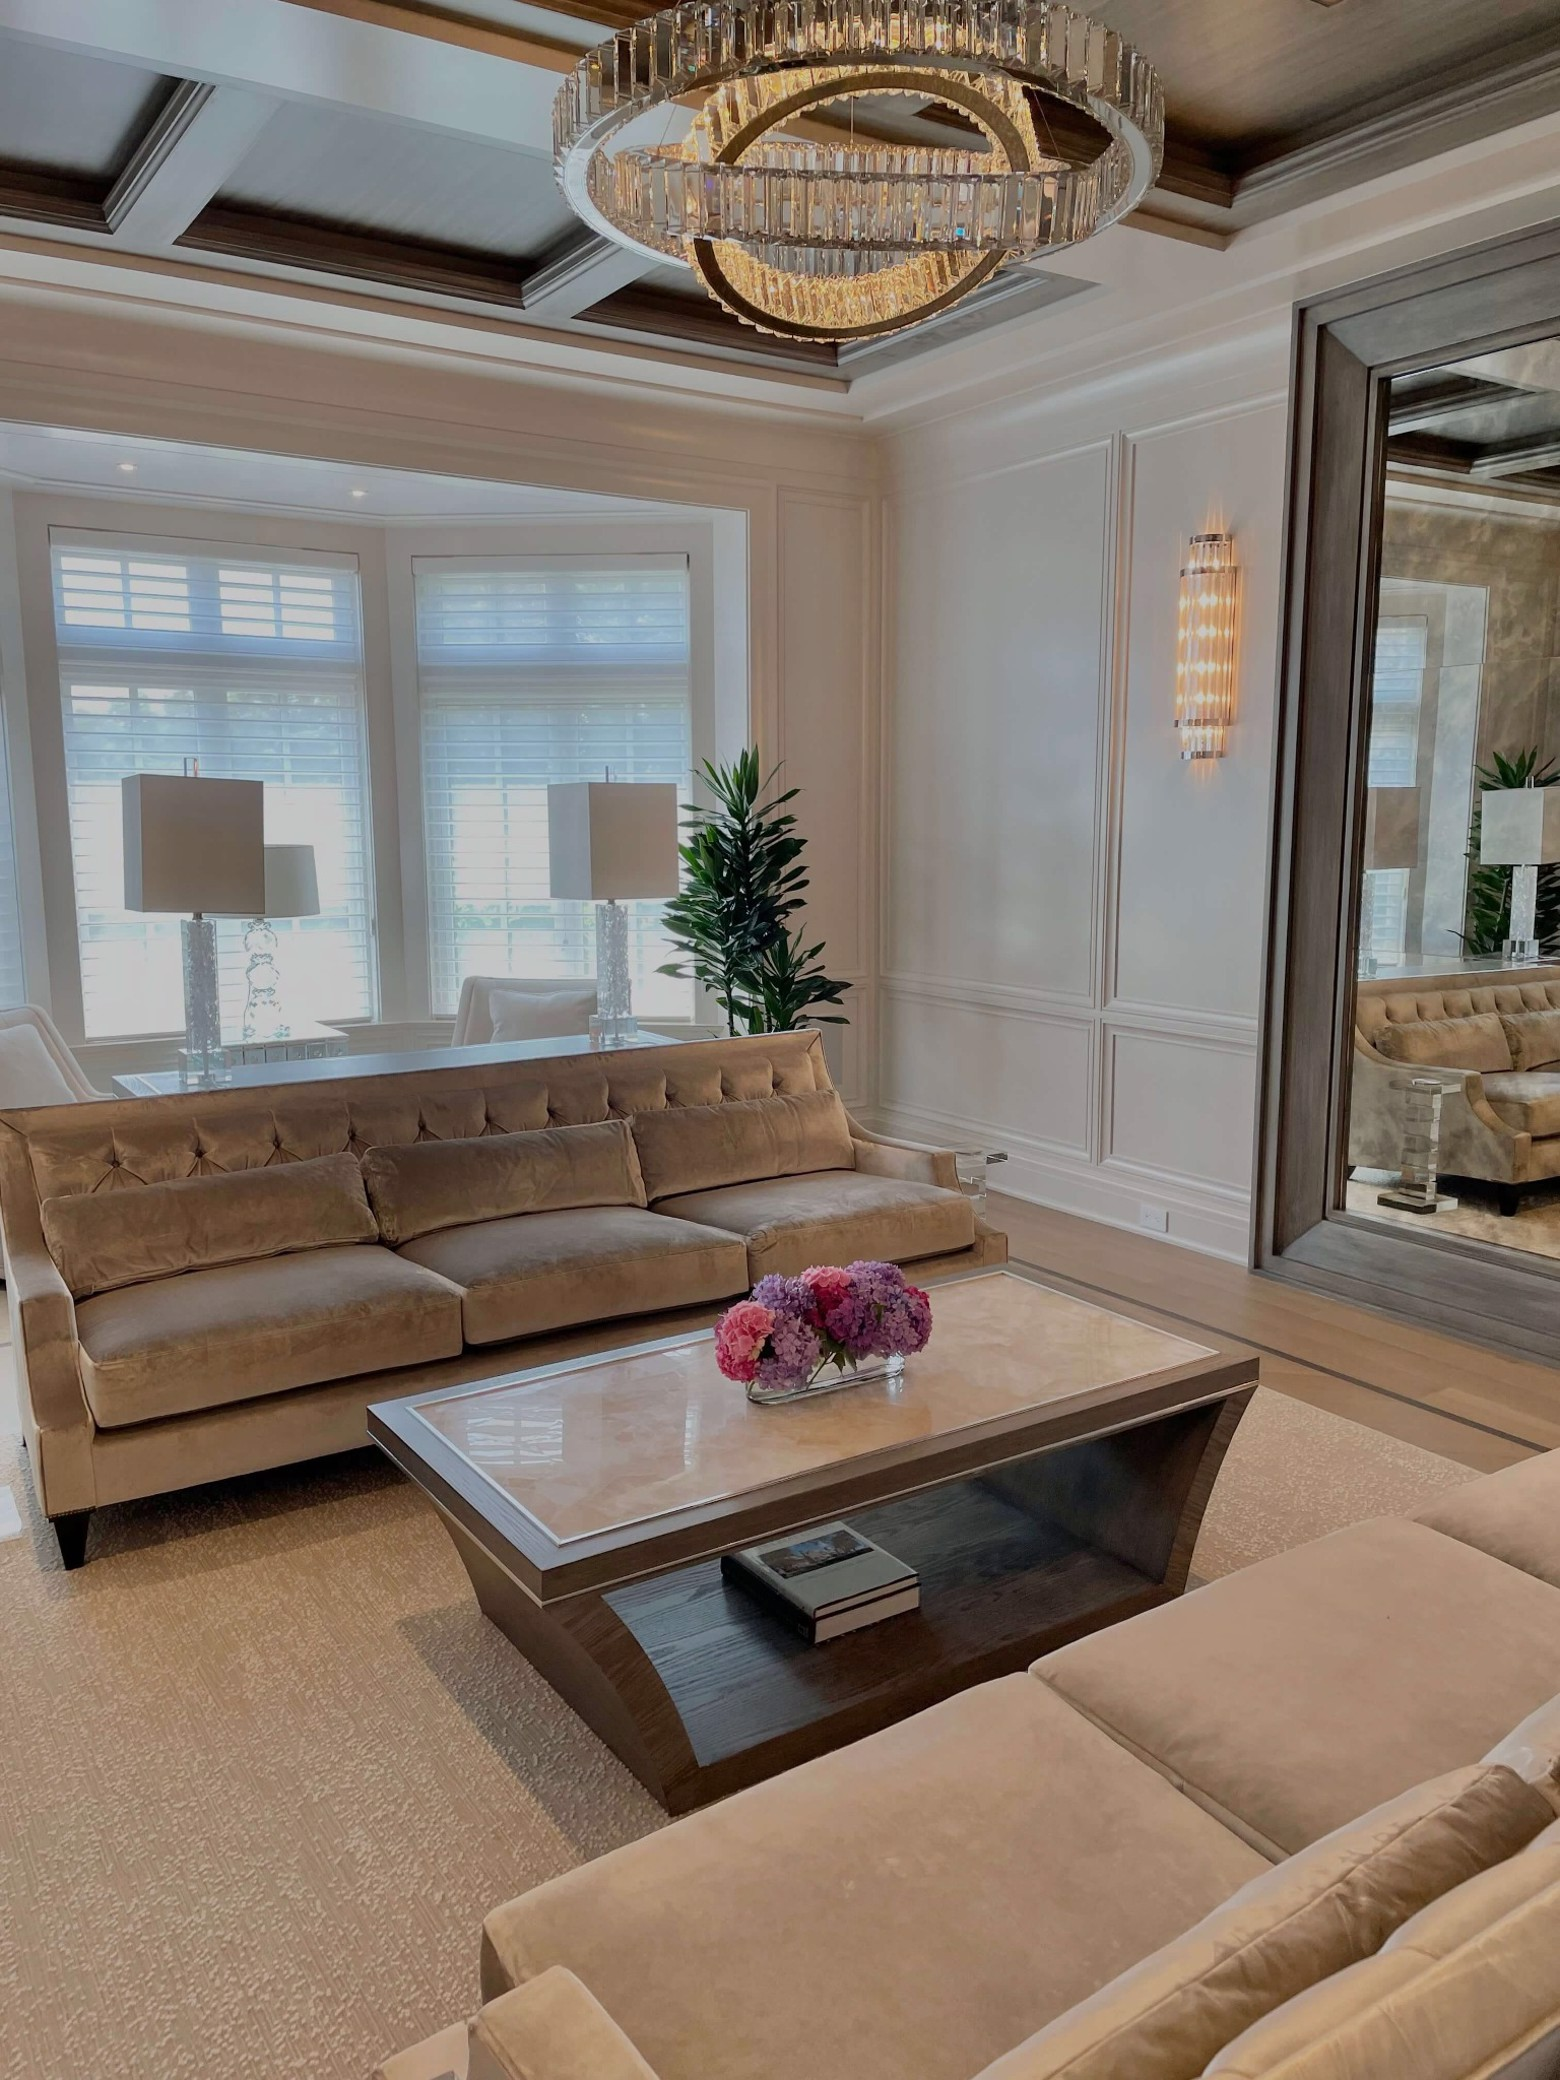 eduardo-fritschy-modern-luxe-home-project-3.jpg image